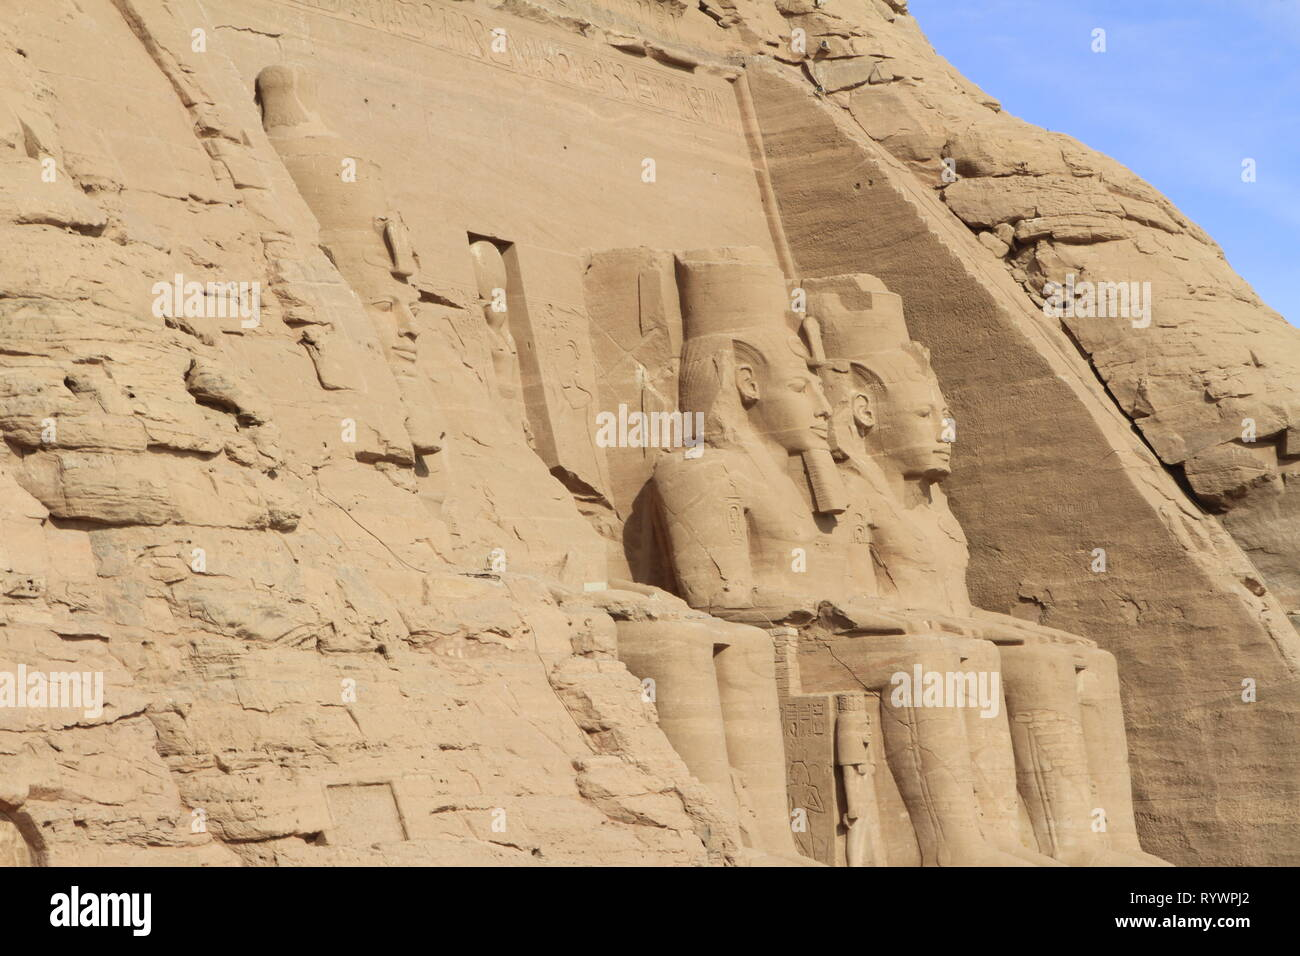 The Great Temple of Ramesses II, Abu Simbel, Nubia, Upper Egypt, North Africa, Middle East Stock Photo